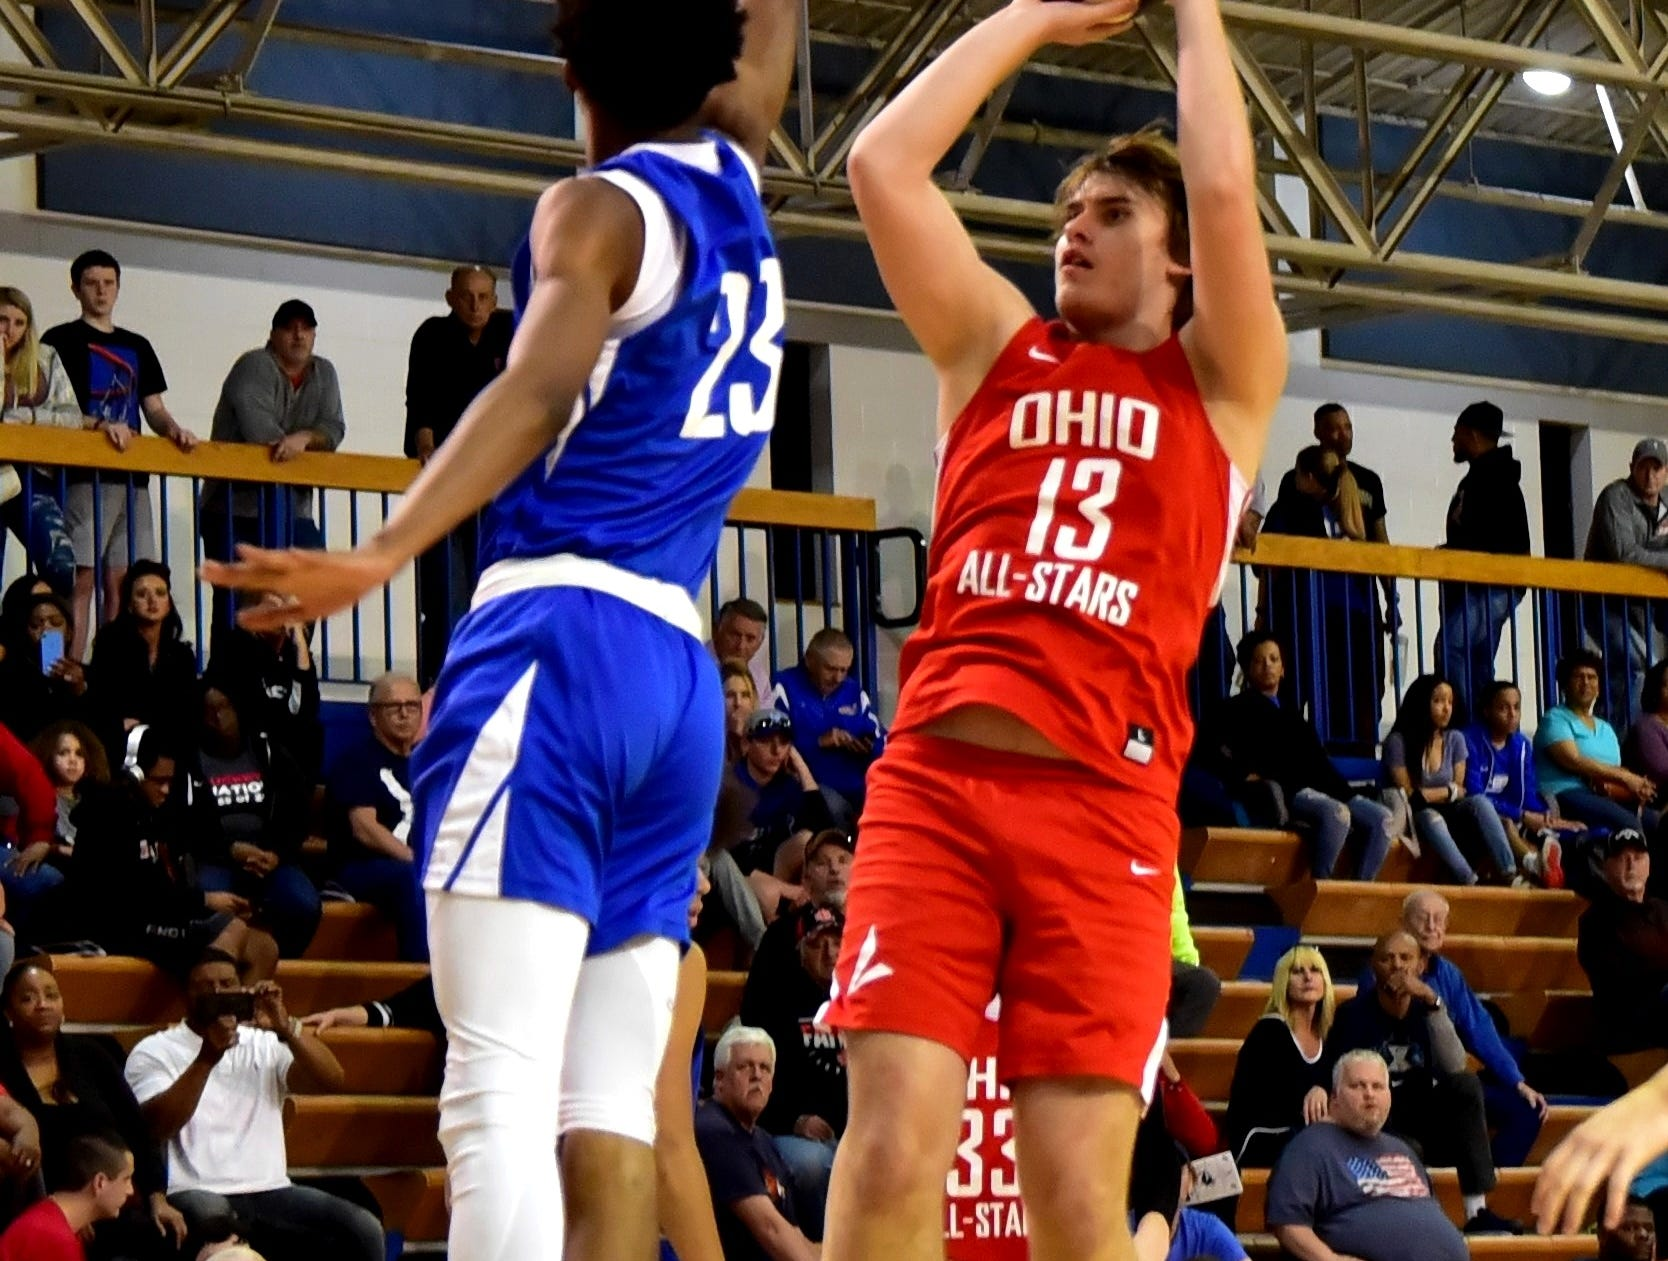 Mason Darby (13) of Oak Hill cashes in a jump shot for the Ohio boys team in late action at the 28th Annual Ohio-Kentucky All Star Games played at Thomas More University, April 13, 2019